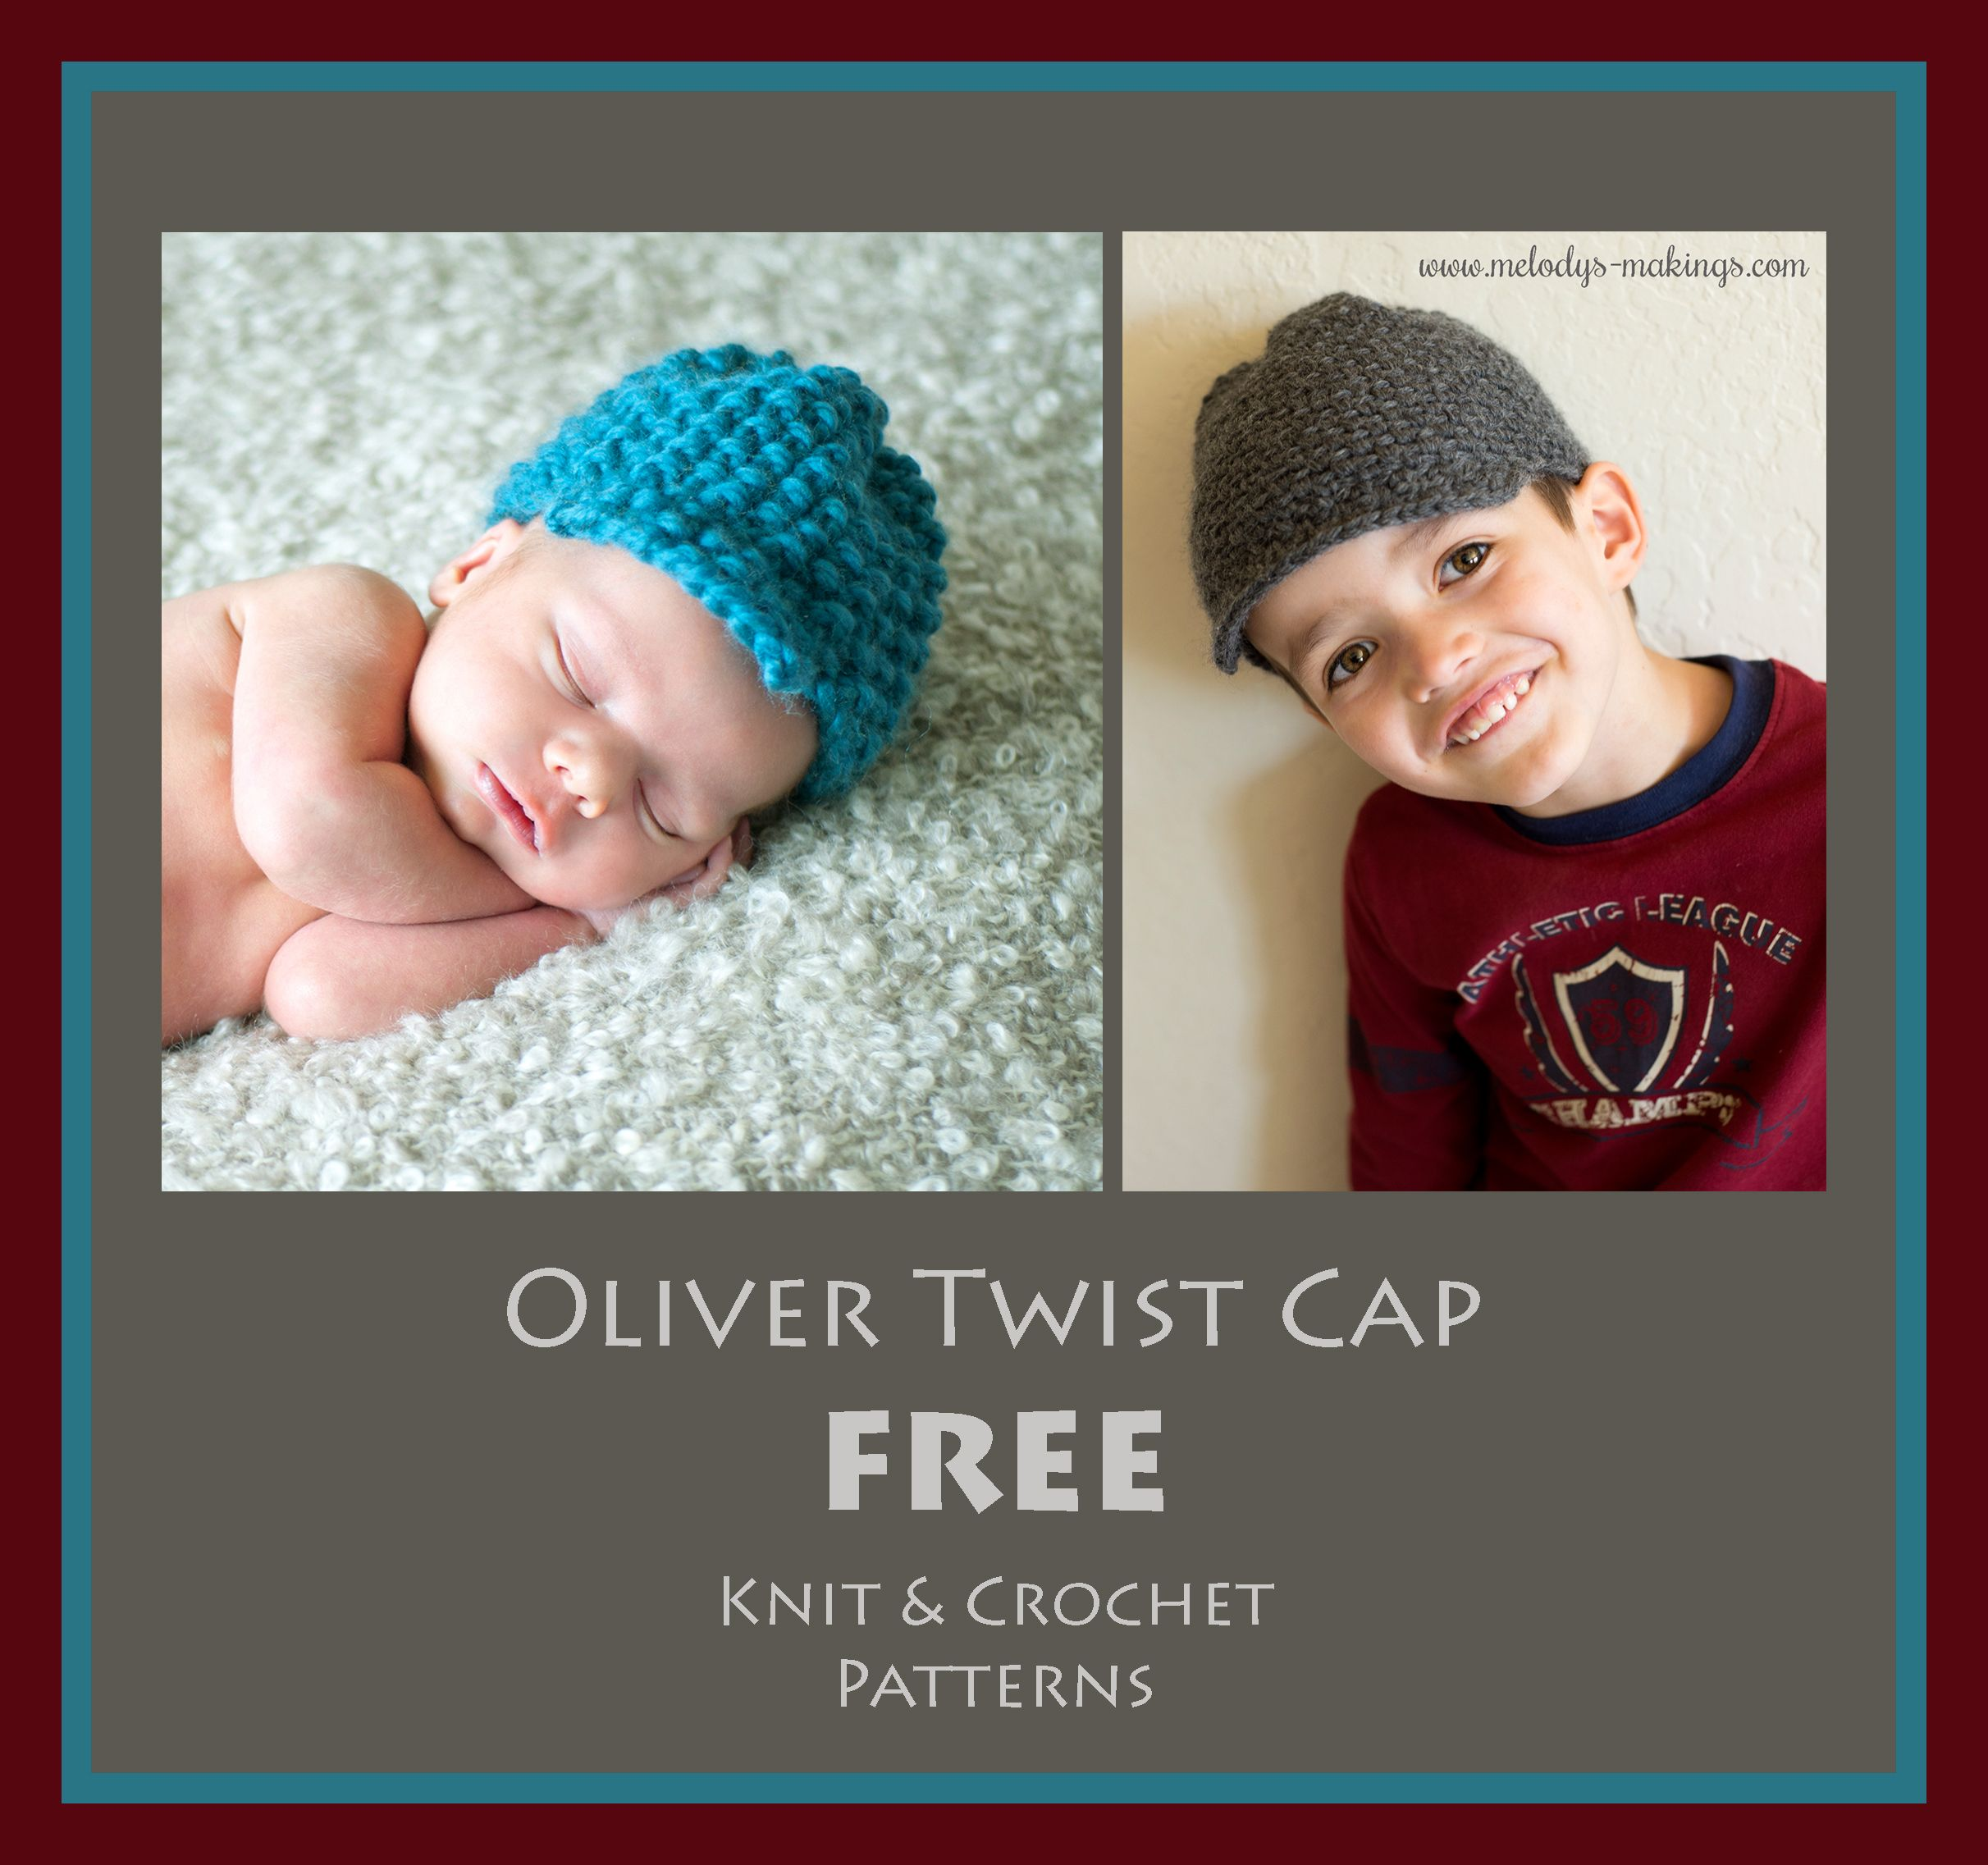 Oliver Twist Cap – Free Crochet & Knit Patterns!